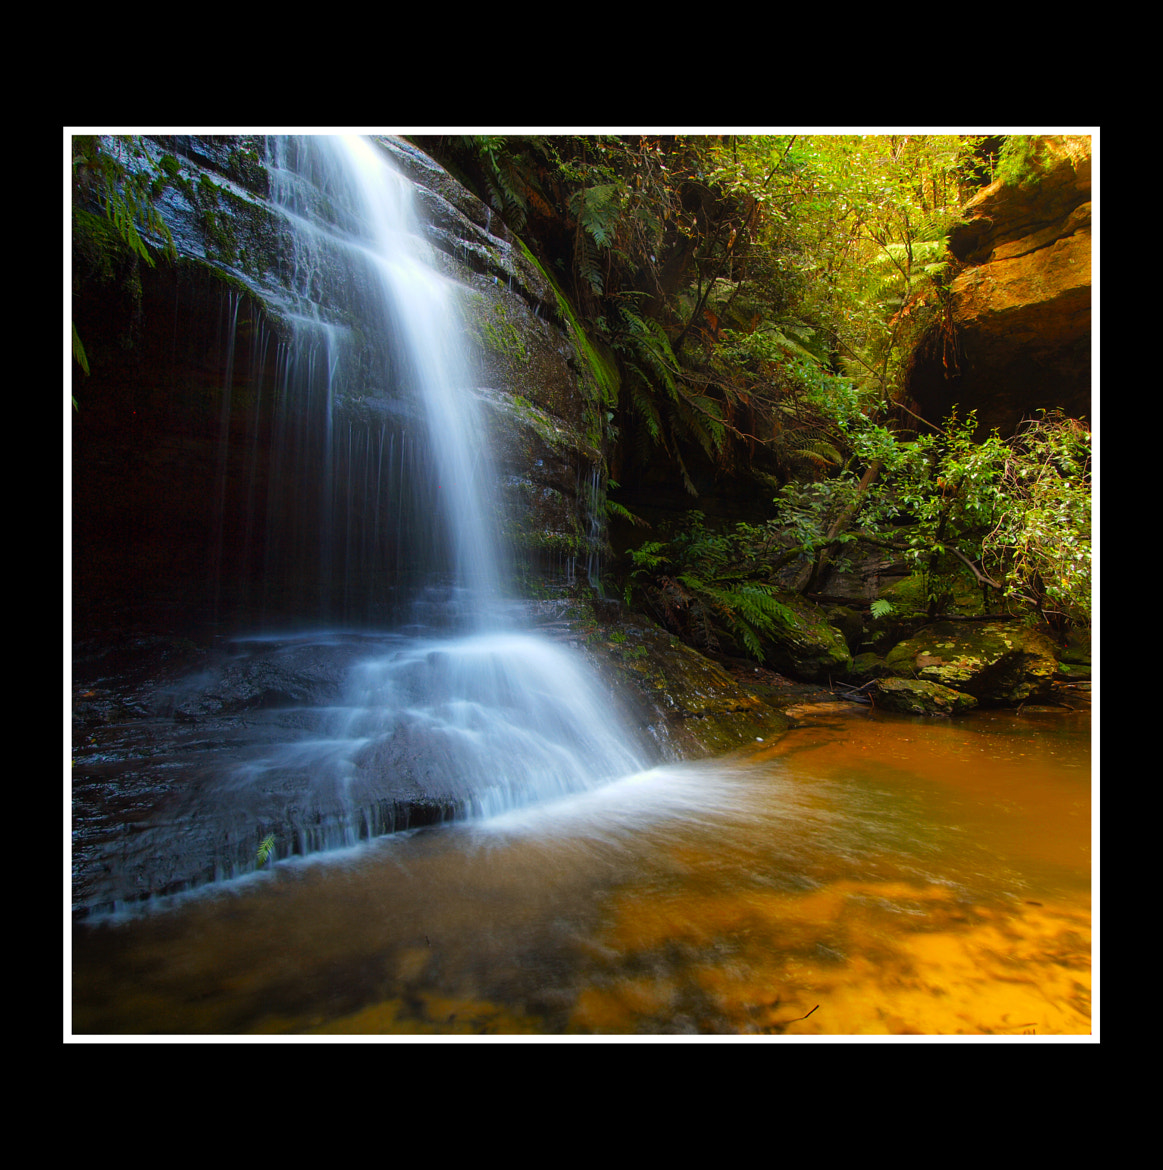 Photograph Pool of Siloam by Anthony Ginman on 500px